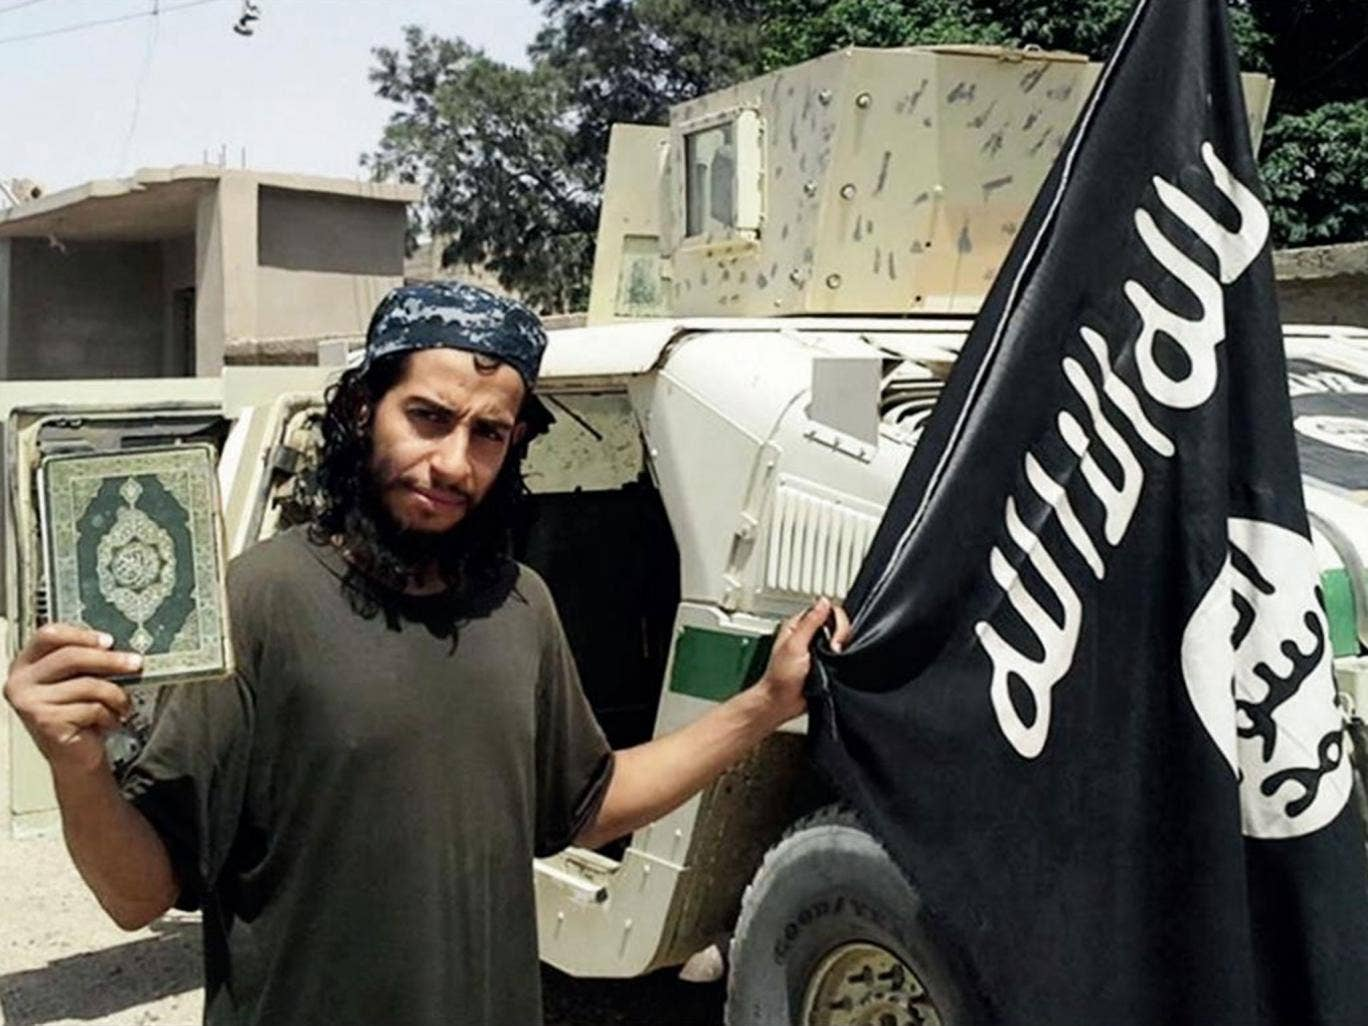 Paris Attack Suspects Finally Identified, And Here's The List - Abdelhamid Abaaoud